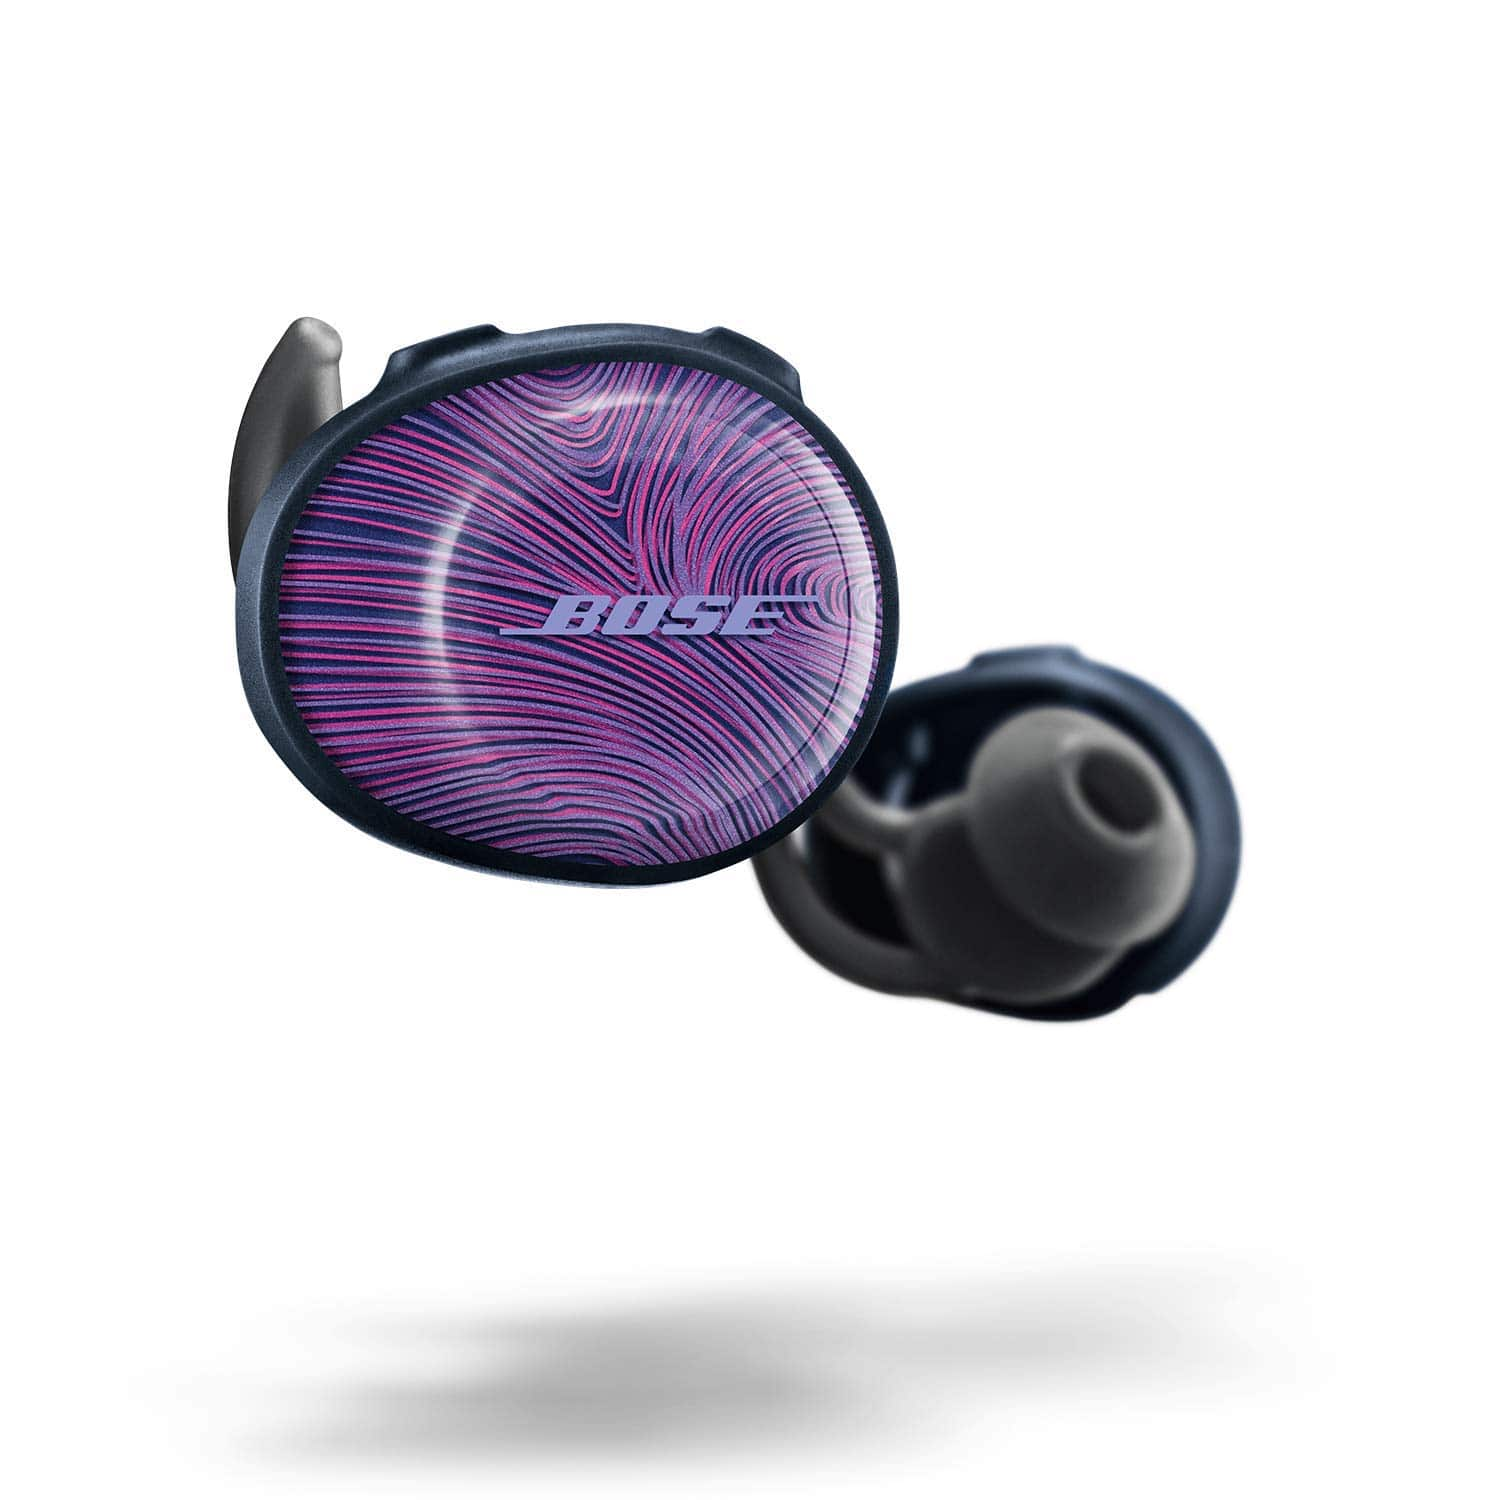 Bose SoundSport Free Truly Wireless Sport Headphones: A Complete Review